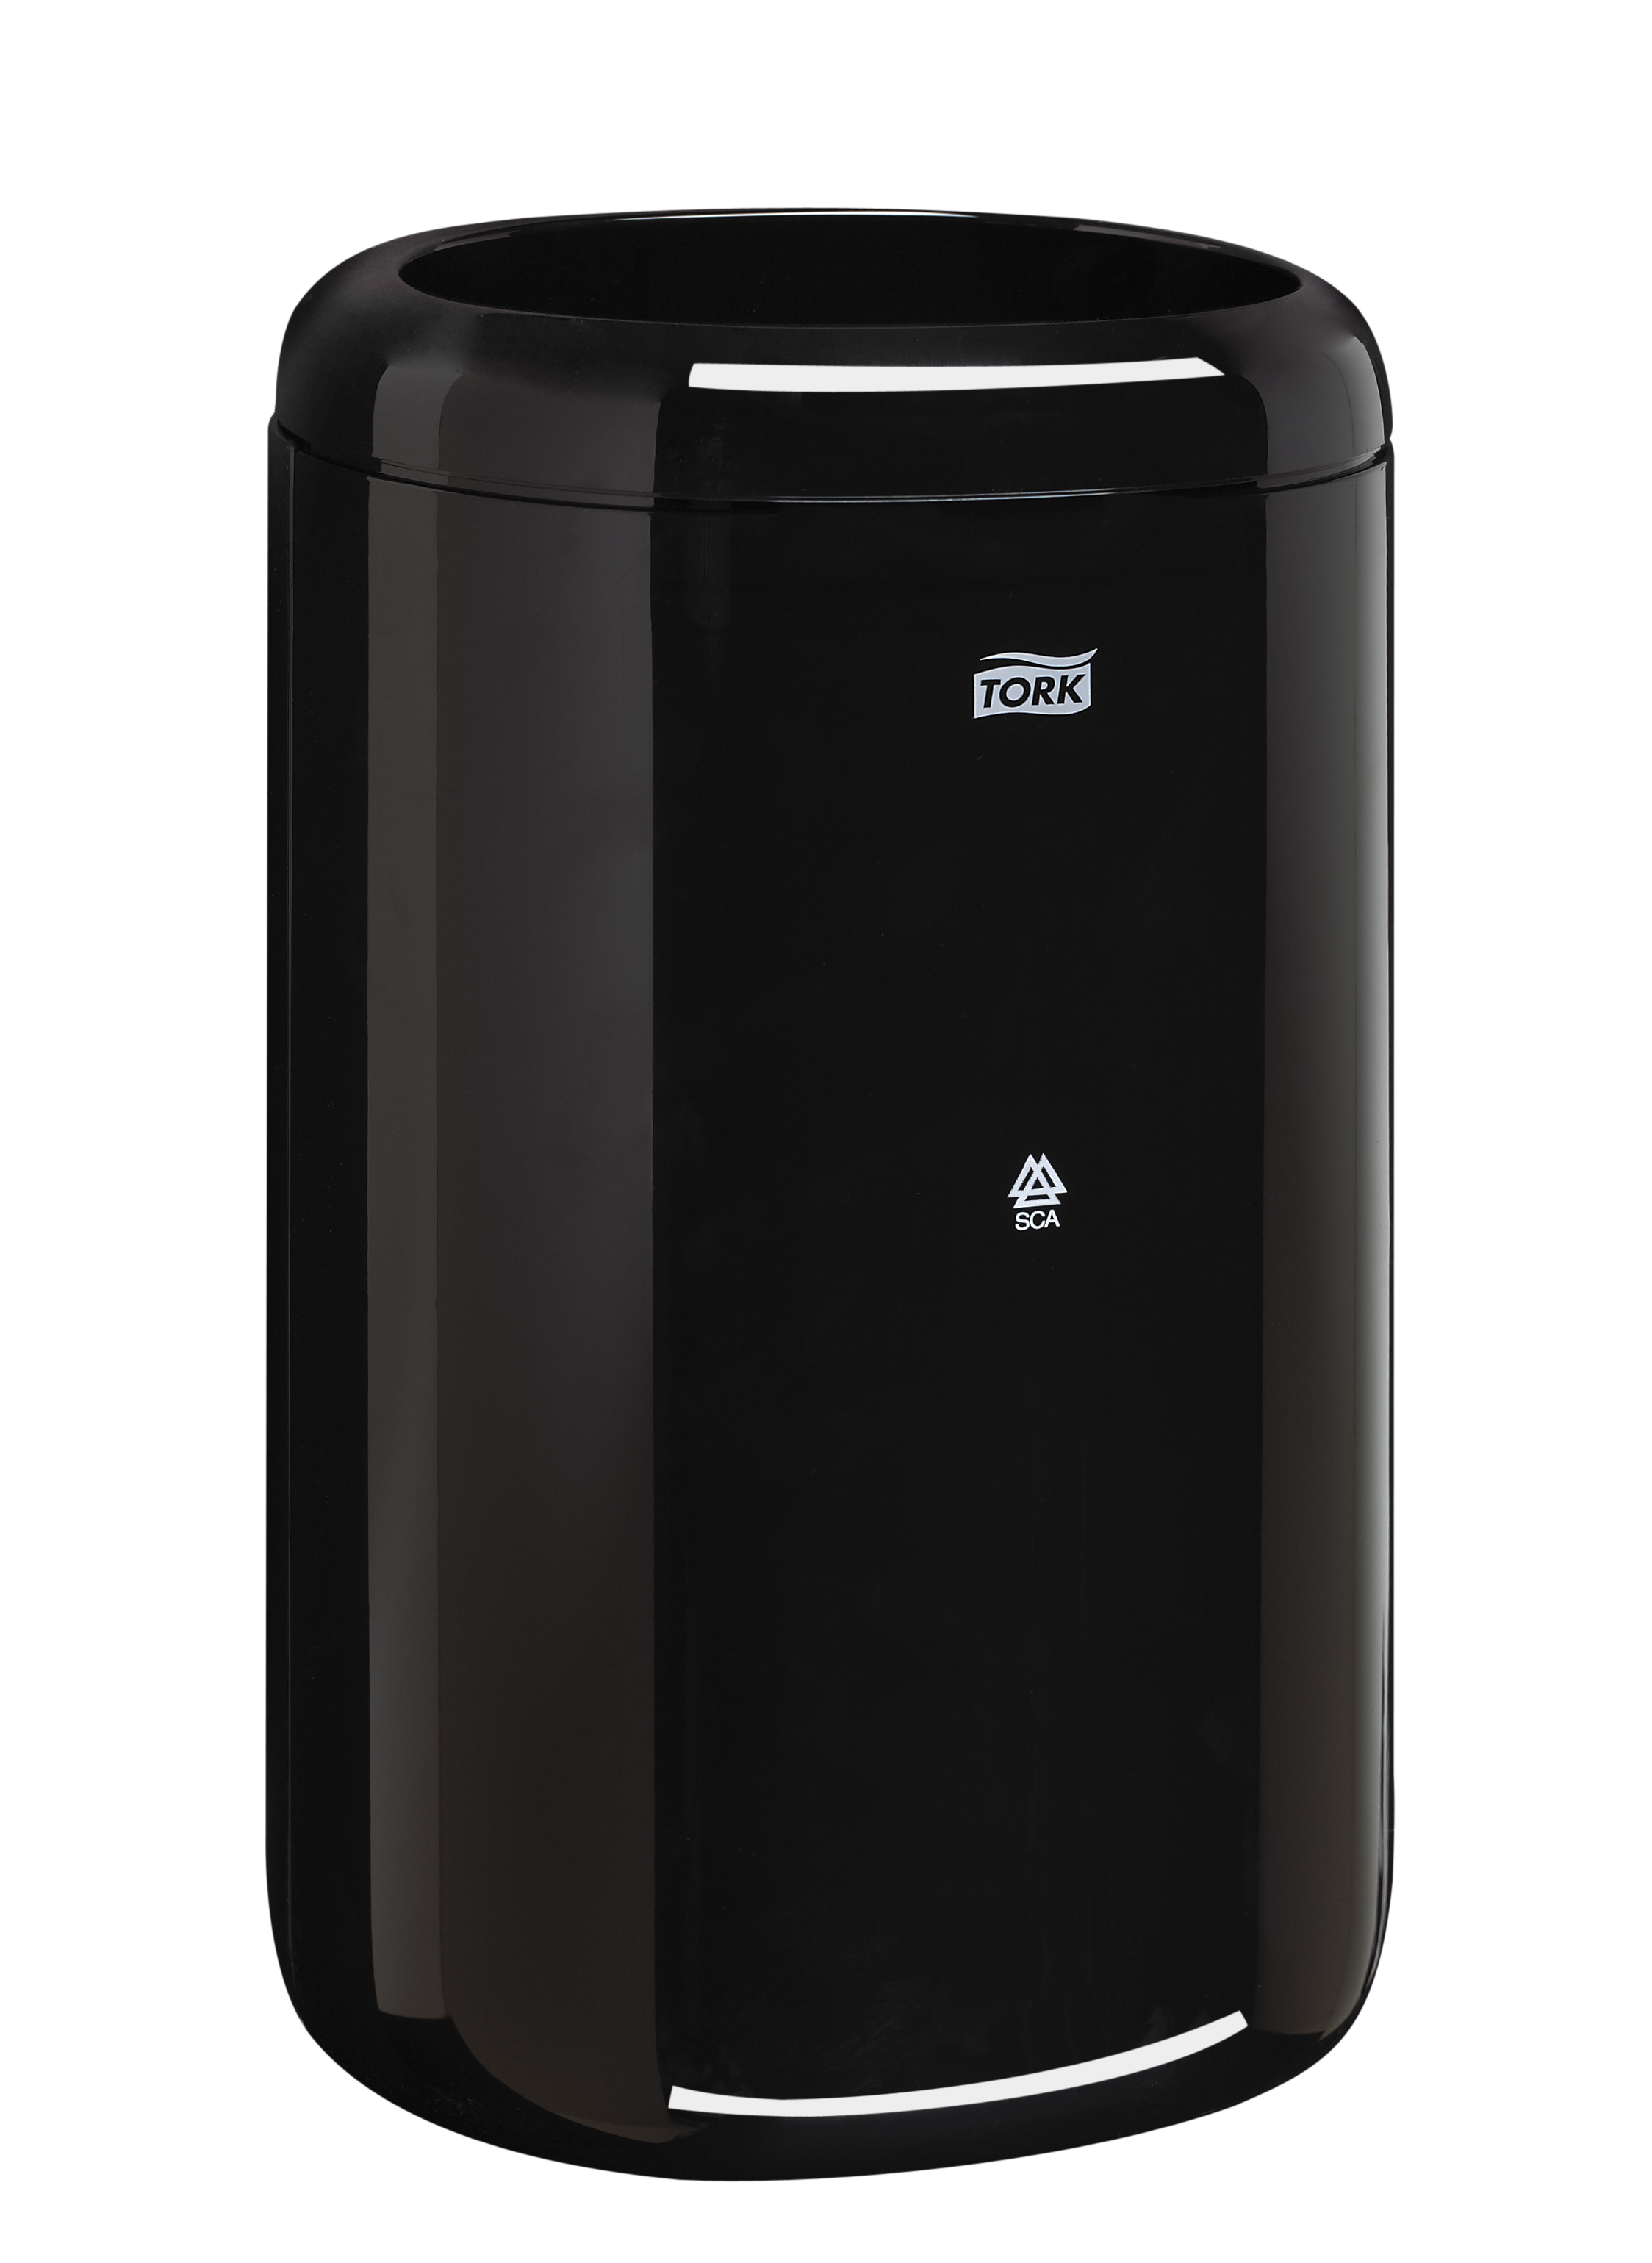 10073286624205 5640280-Tork Elevation DoorMate Waste Bin, Black